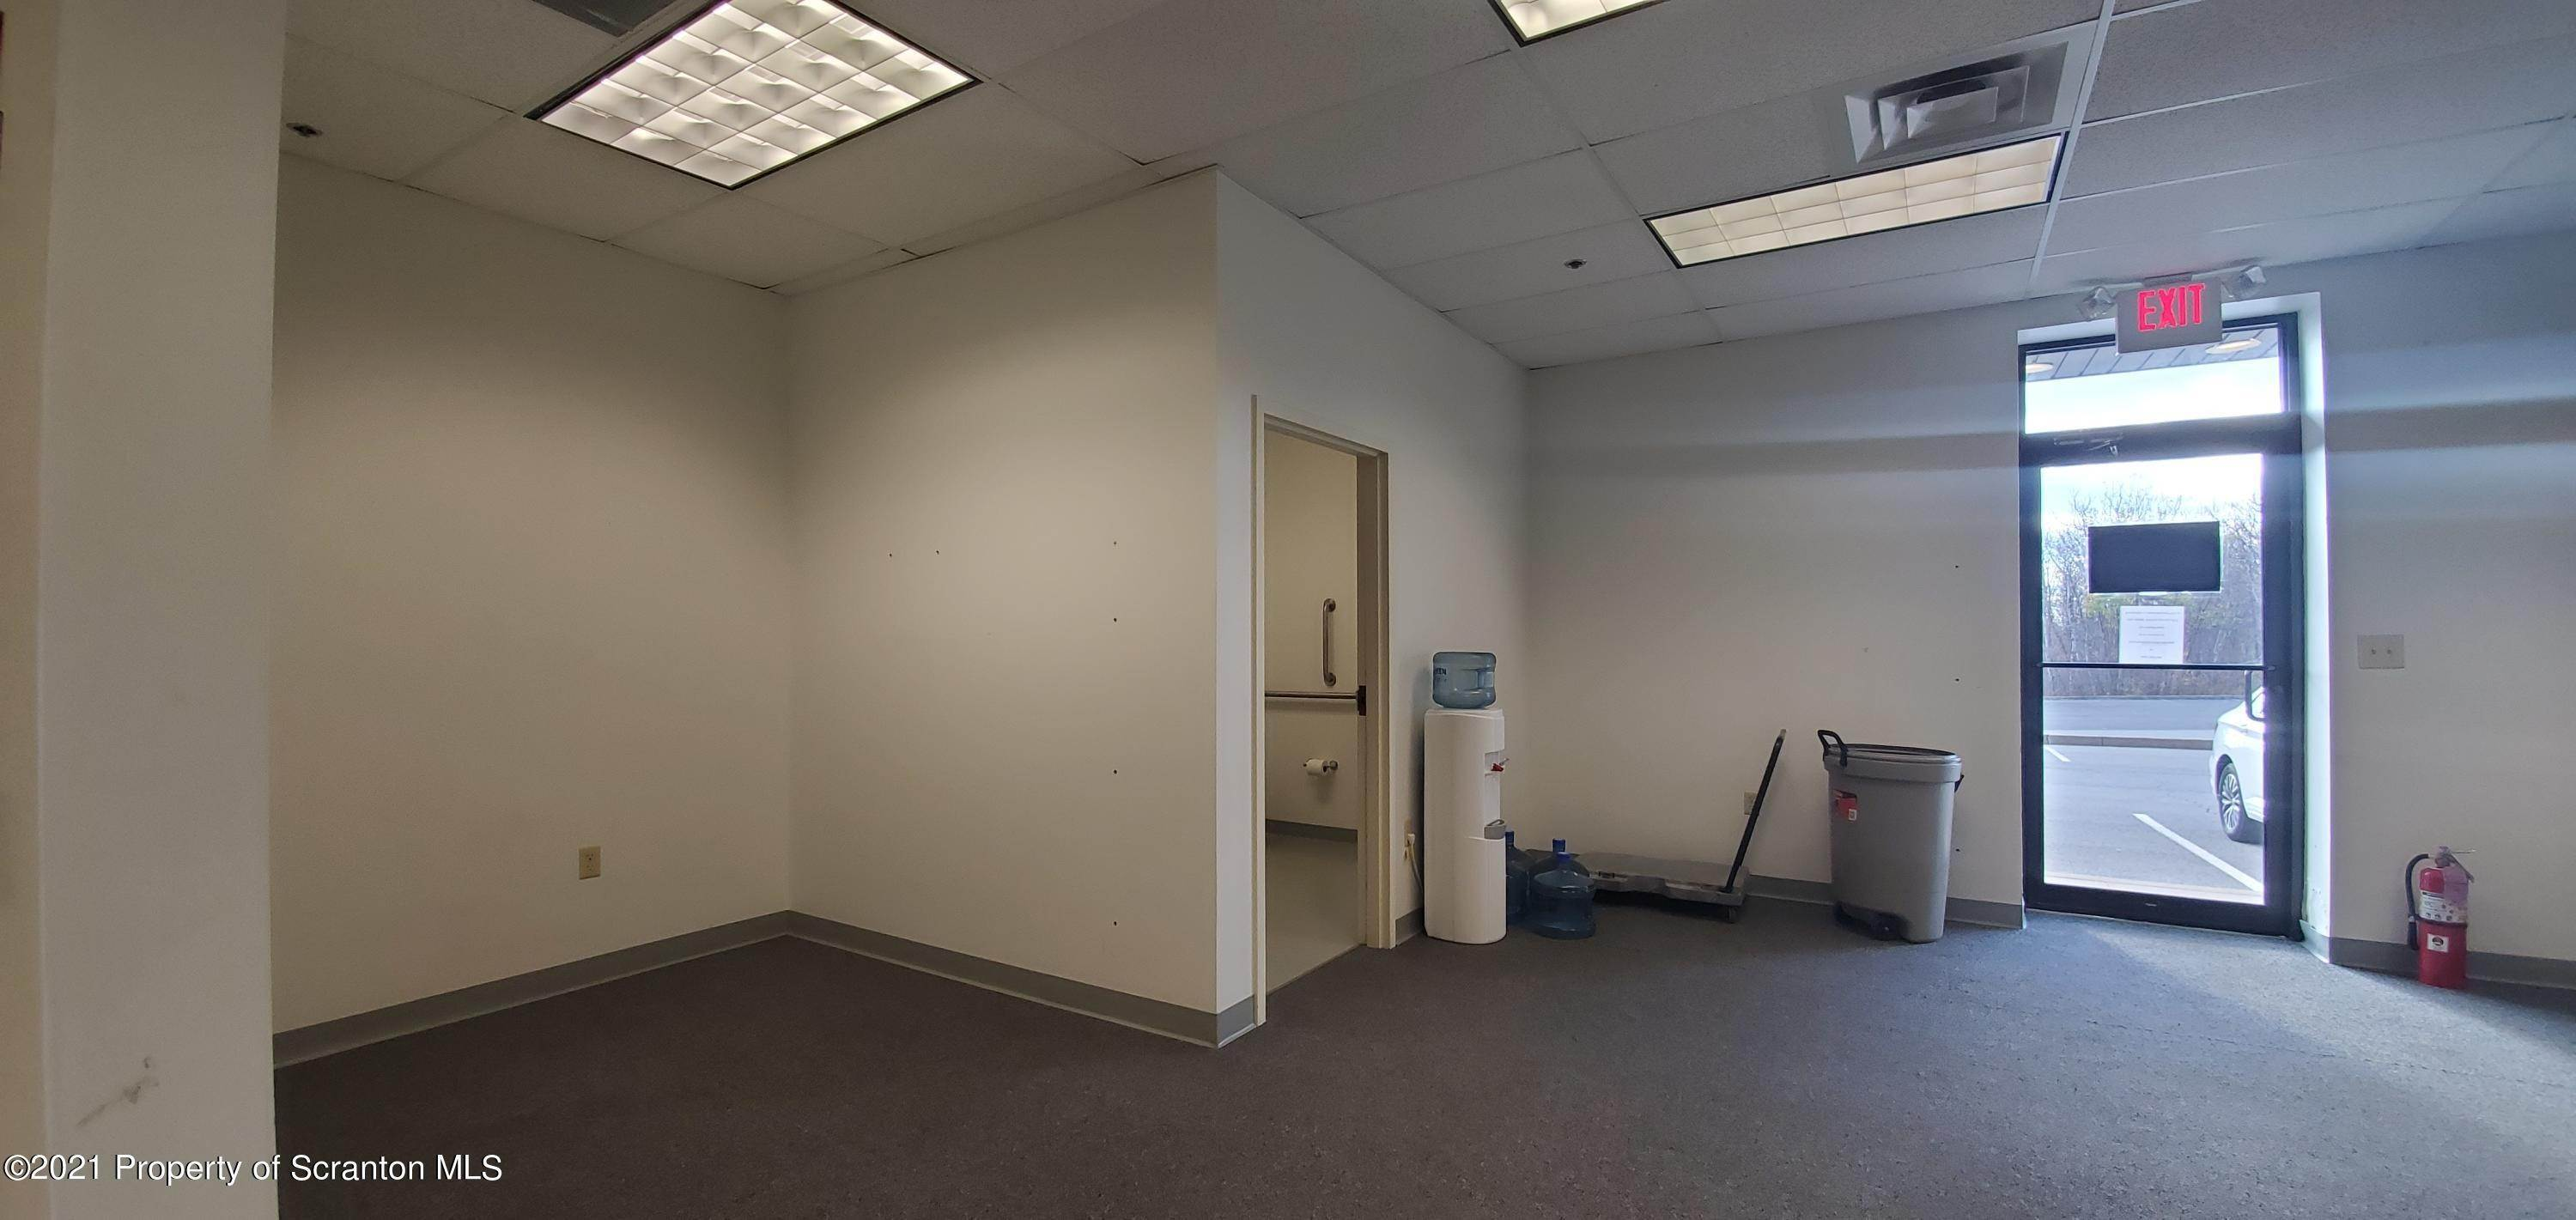 12. Commercial for Rent at 2200 Stafford Ave Scranton, Pennsylvania 18505 United States